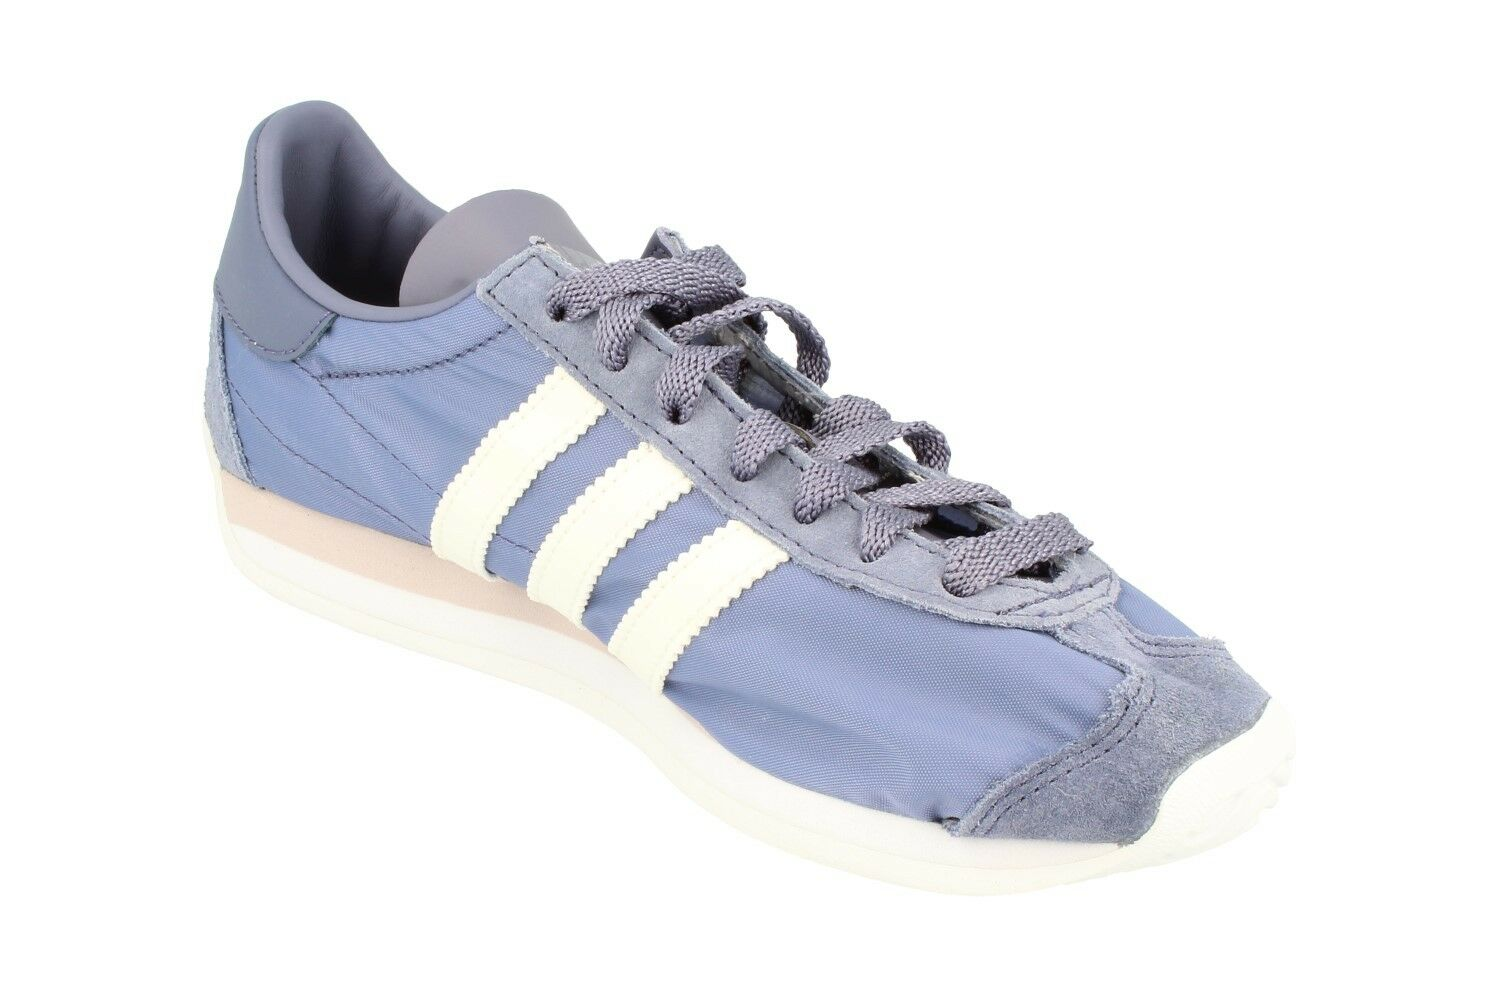 Adidas Originals Country Og S32204 Damenschuhe Trainers Sneakers Schuhes S32204 Og 609aa3